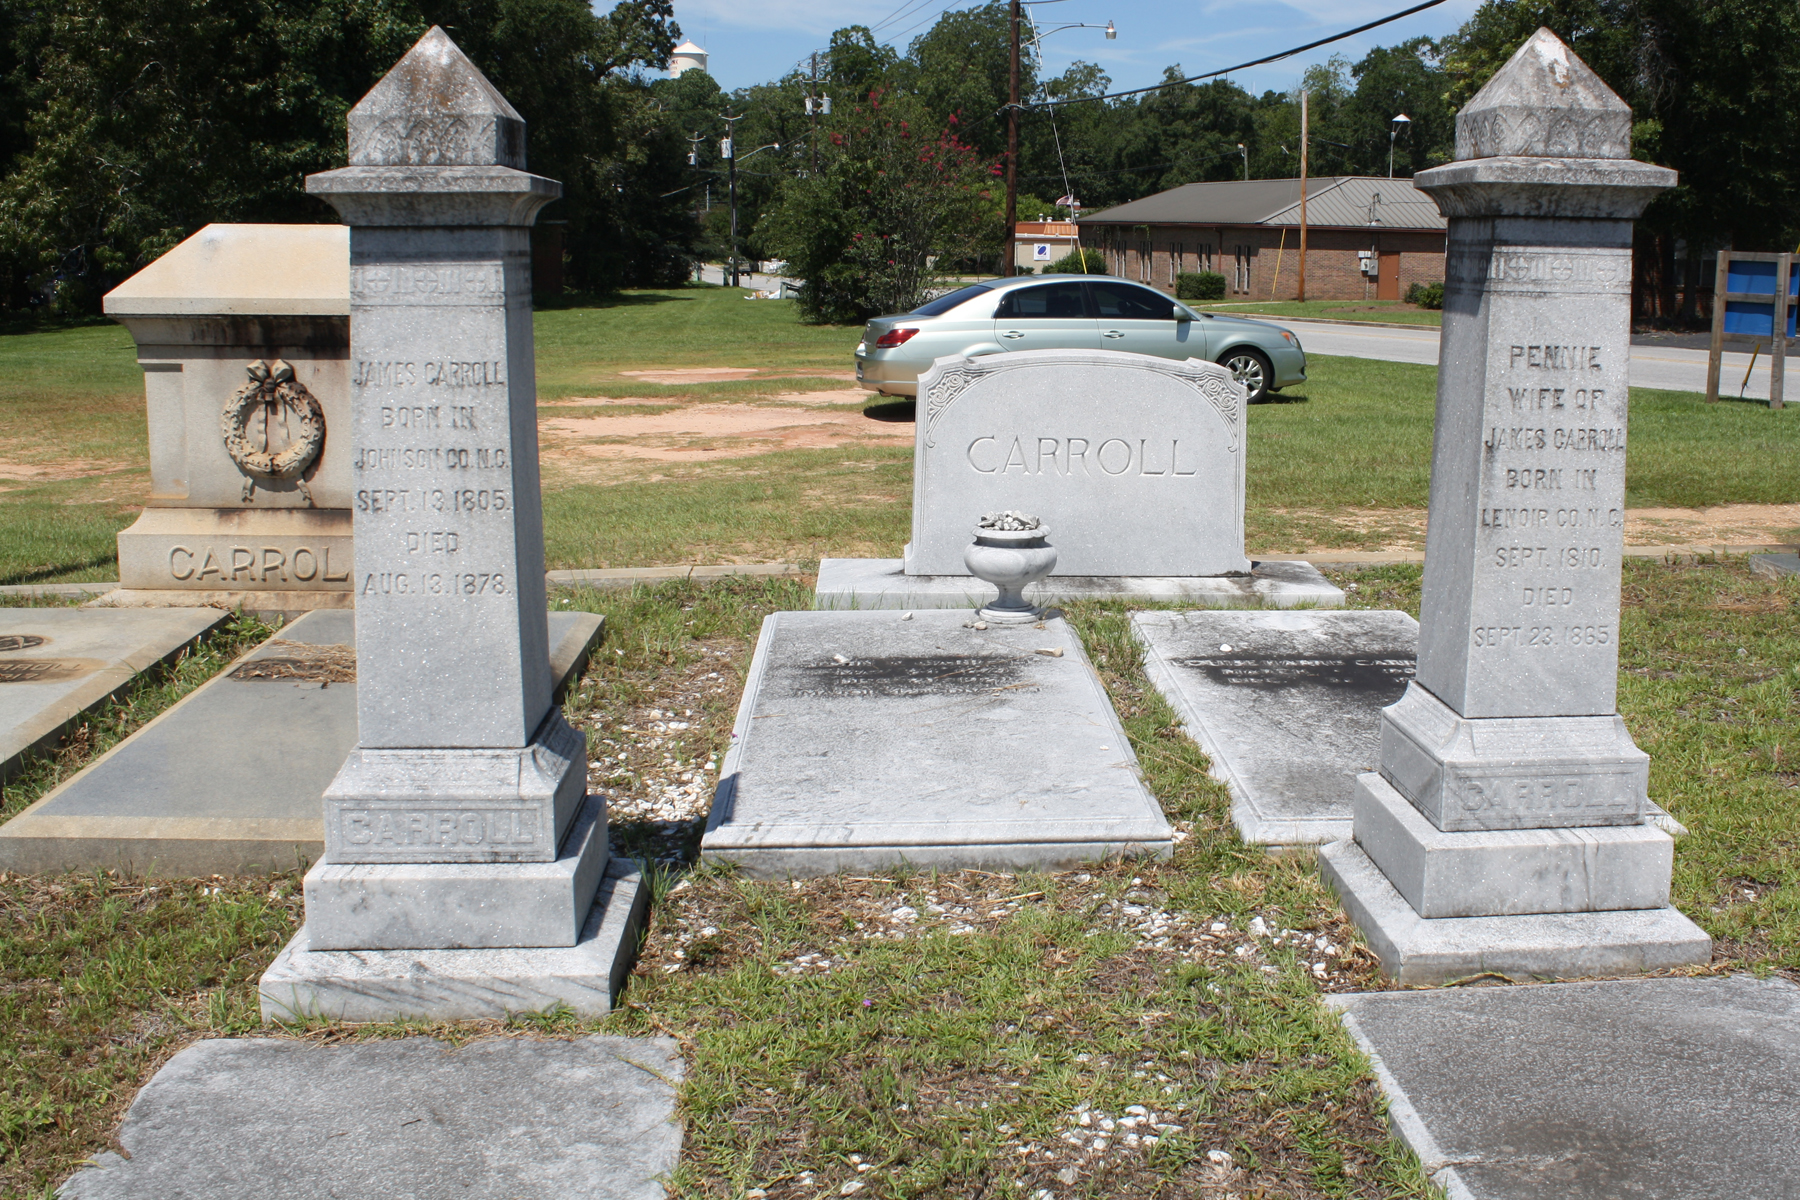 20170801 AL_Ozark_UnionCemetery - 2 Carroll_James-Pennie 6x4 300ppi copy